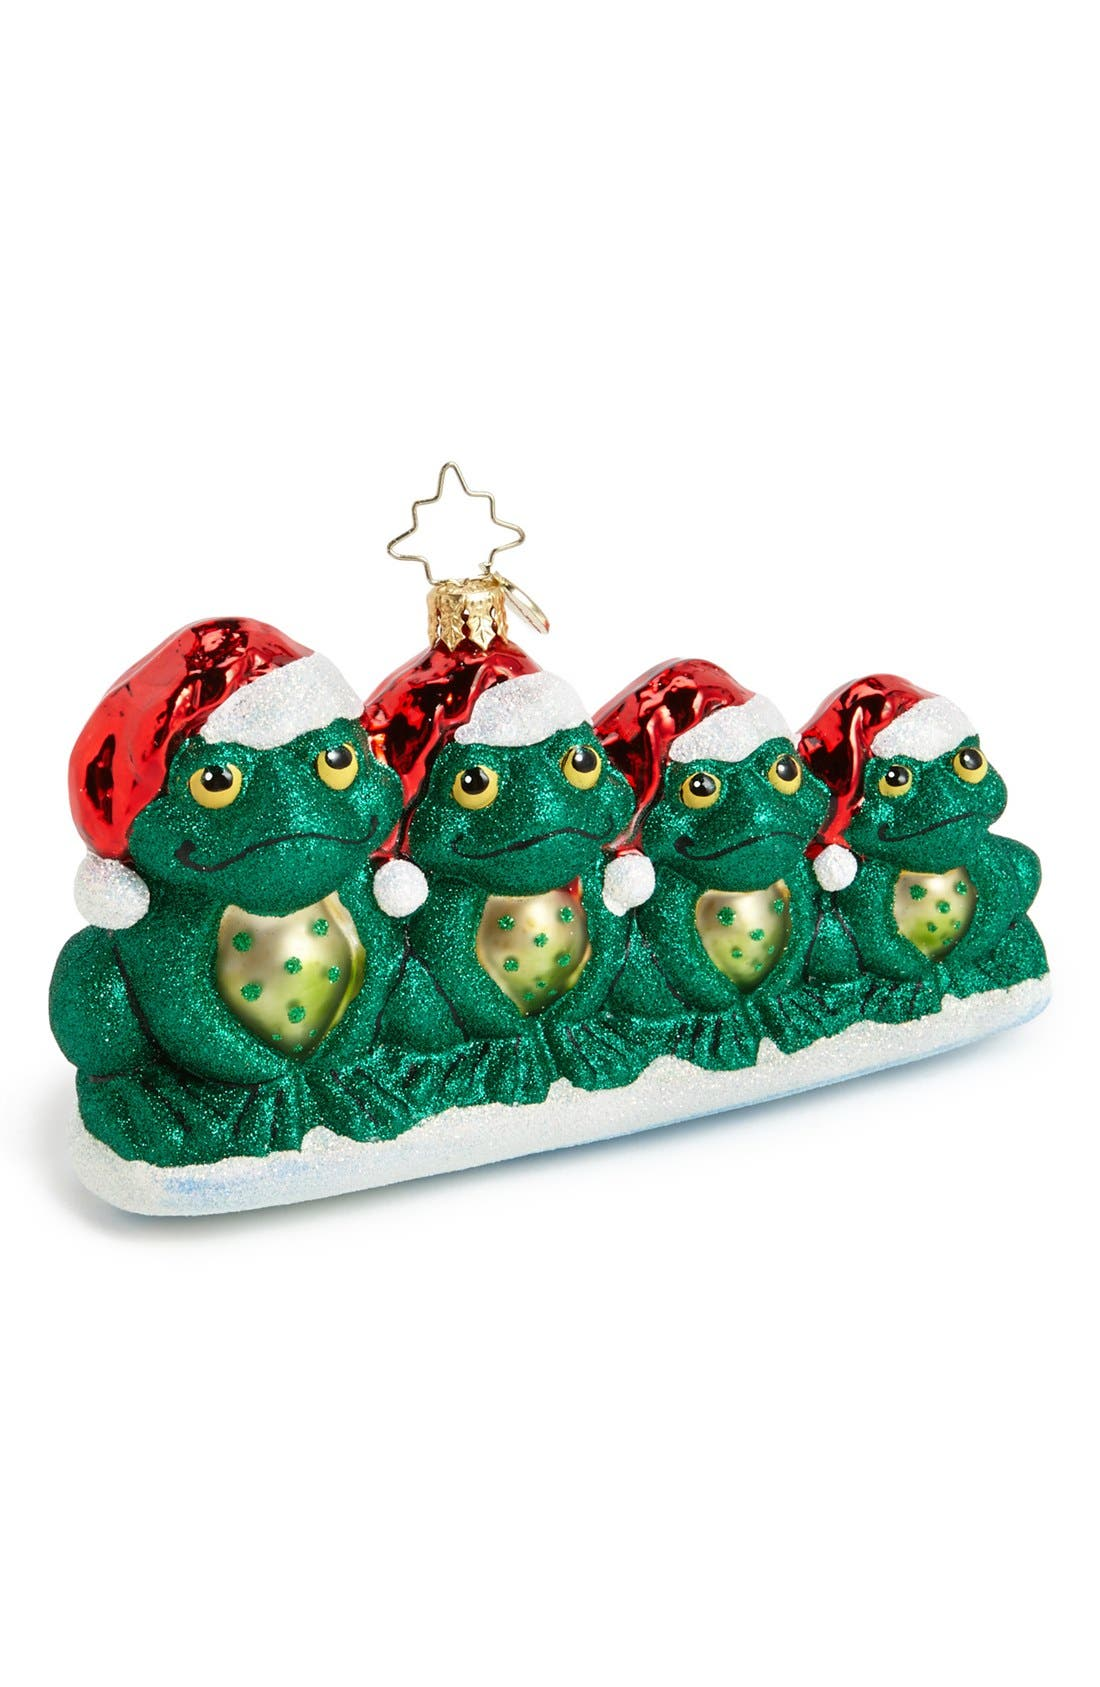 Alternate Image 1 Selected - Christopher Radko 'Wish You a Froggy Christmas' Ornament